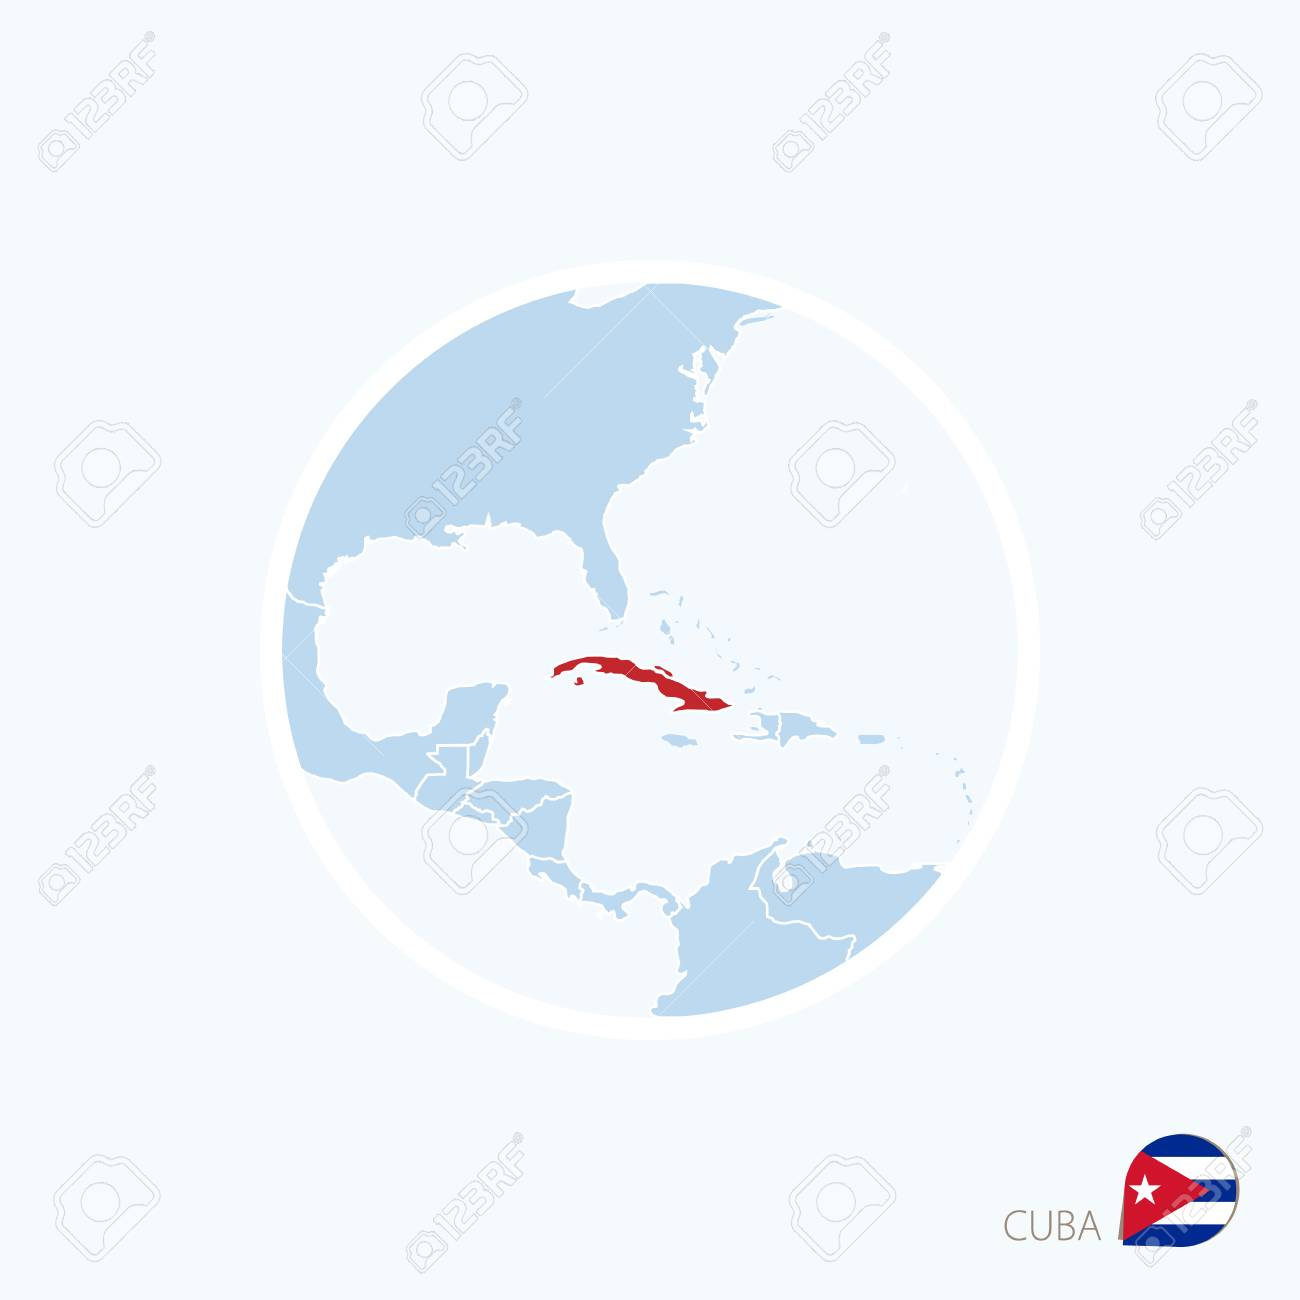 Map icon of cuba blue map of caribbean with highlighted cuba map icon of cuba blue map of caribbean with highlighted cuba in red color gumiabroncs Image collections